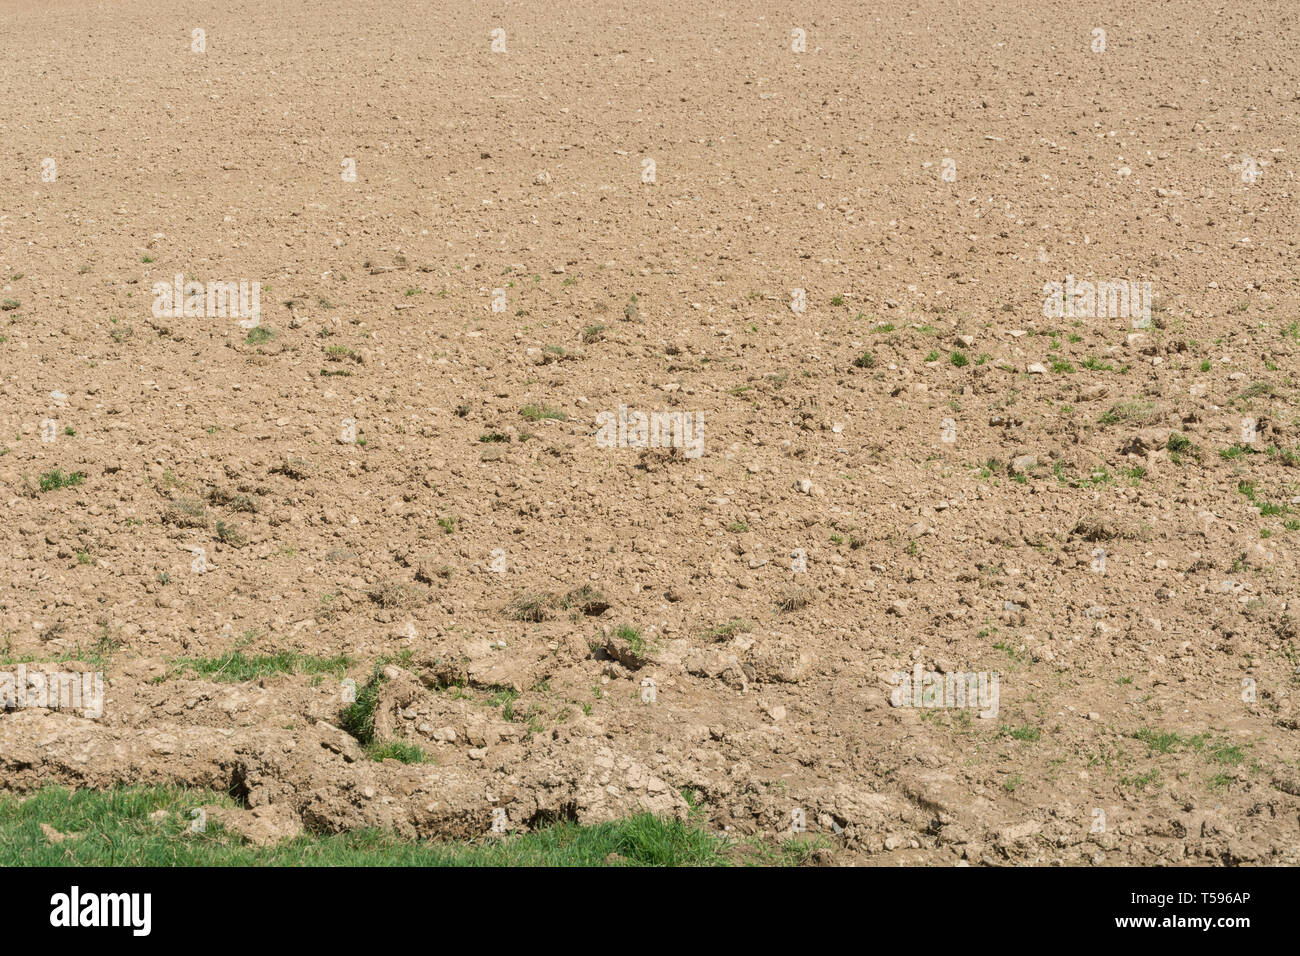 Field in Cornwall, UK, with parched soil after period of little rain. Metaphor for water shortages, dry weather. - Stock Image